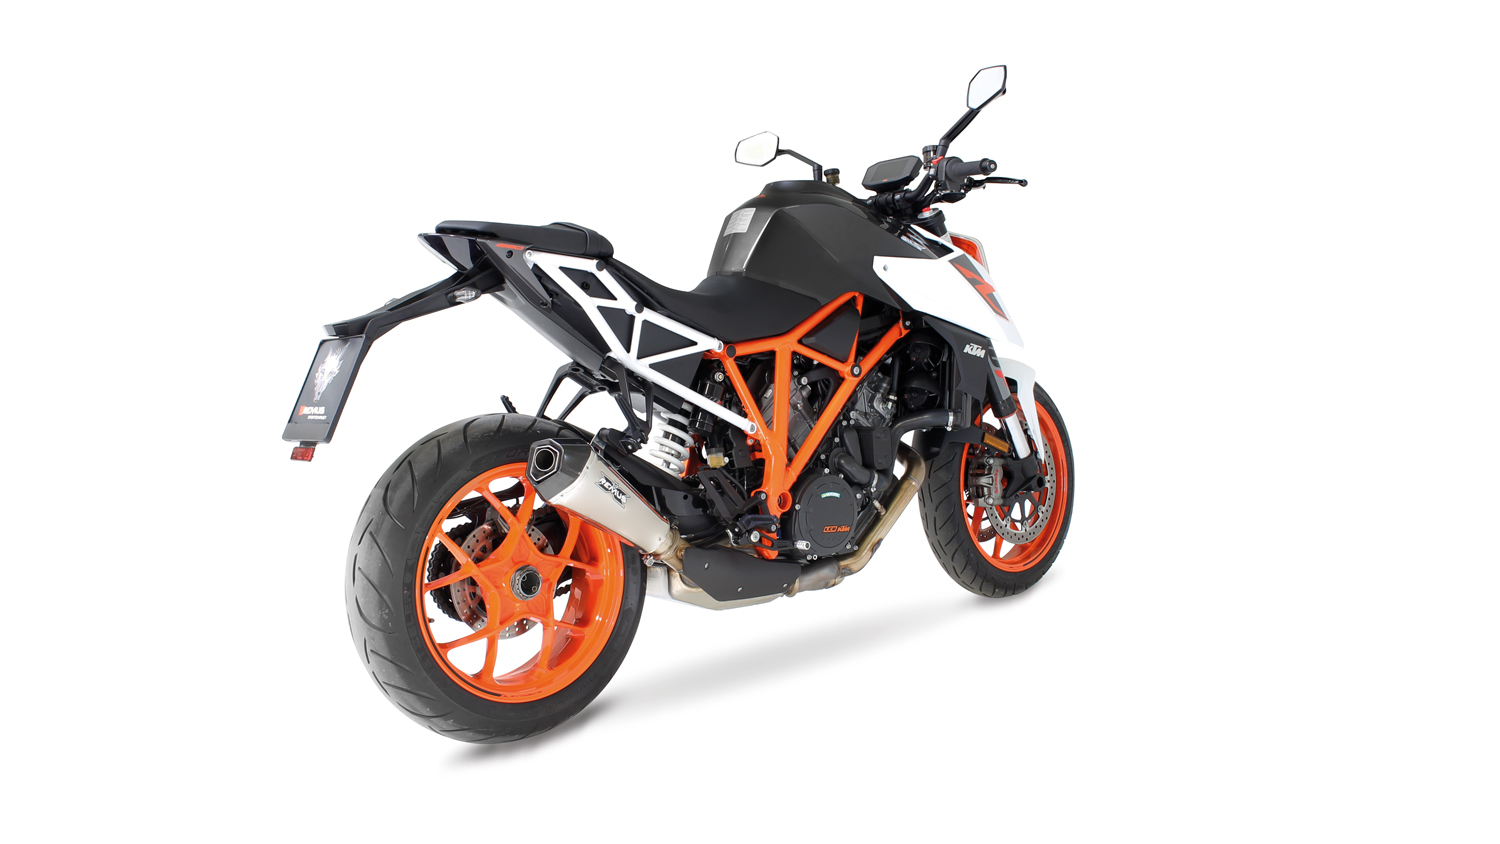 remus news bike info 17 17 ktm 1290 super duke r. Black Bedroom Furniture Sets. Home Design Ideas